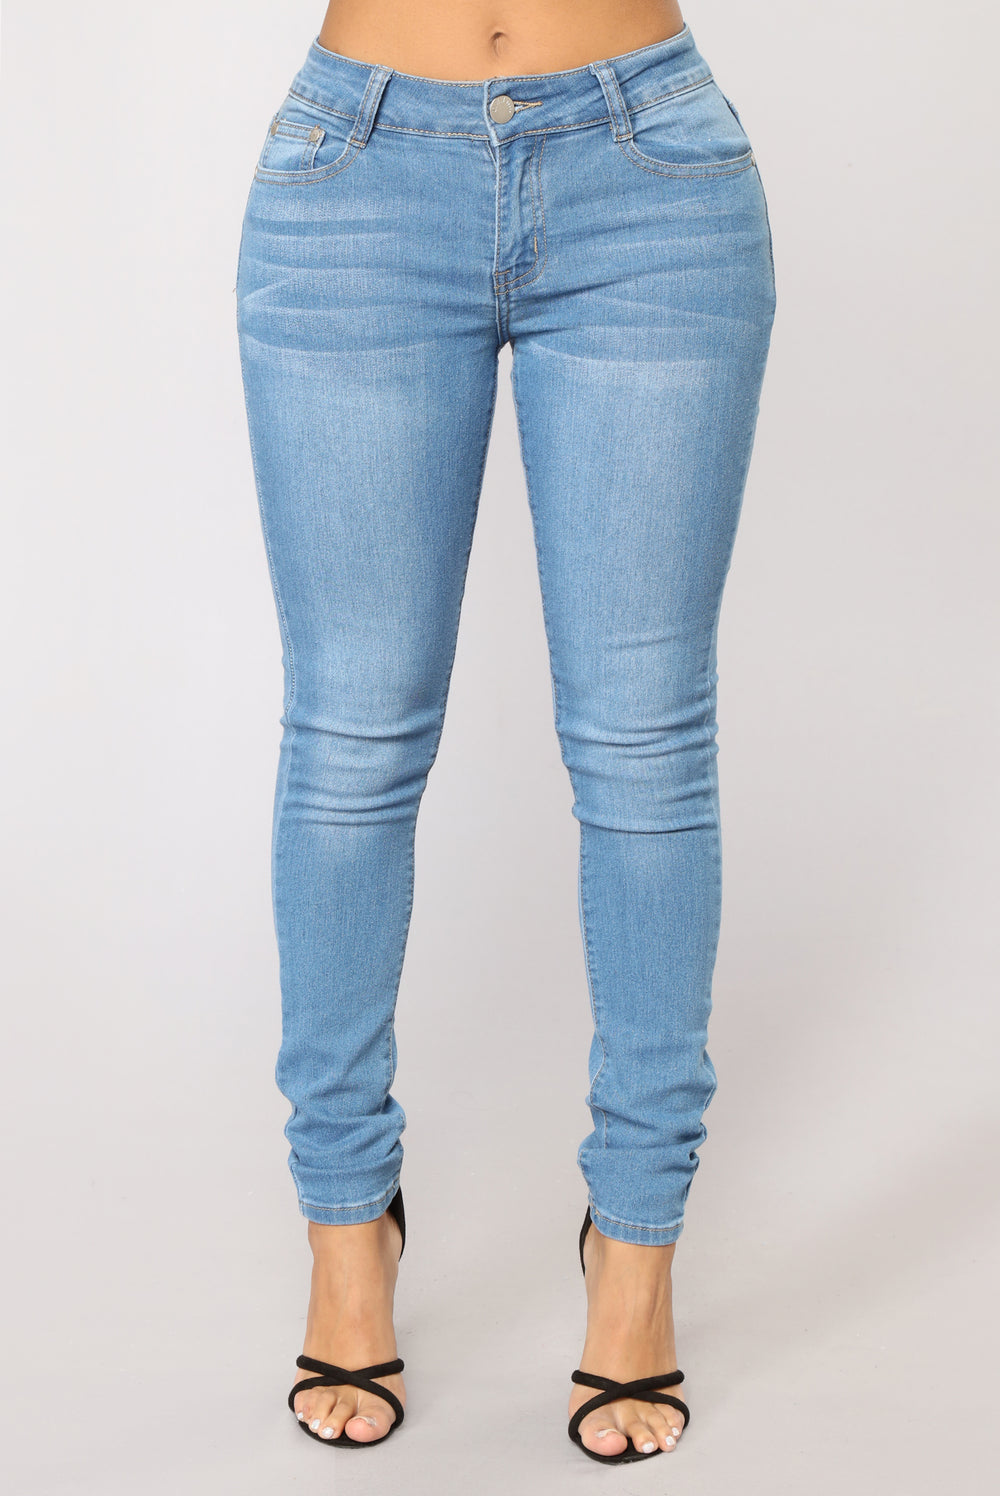 Pull&Bear Super Skinny Jeans In Light Blue. $ ASOS DESIGN extreme super skinny jeans with knee rips in black. $ ASOS DESIGN skinny jeans in white with knee rips. $ ASOS DESIGN slim jeans in flat mid wash. $ ASOS DESIGN skinny dungarees in black. $ ASOS DESIGN skinny jeans in indigo.